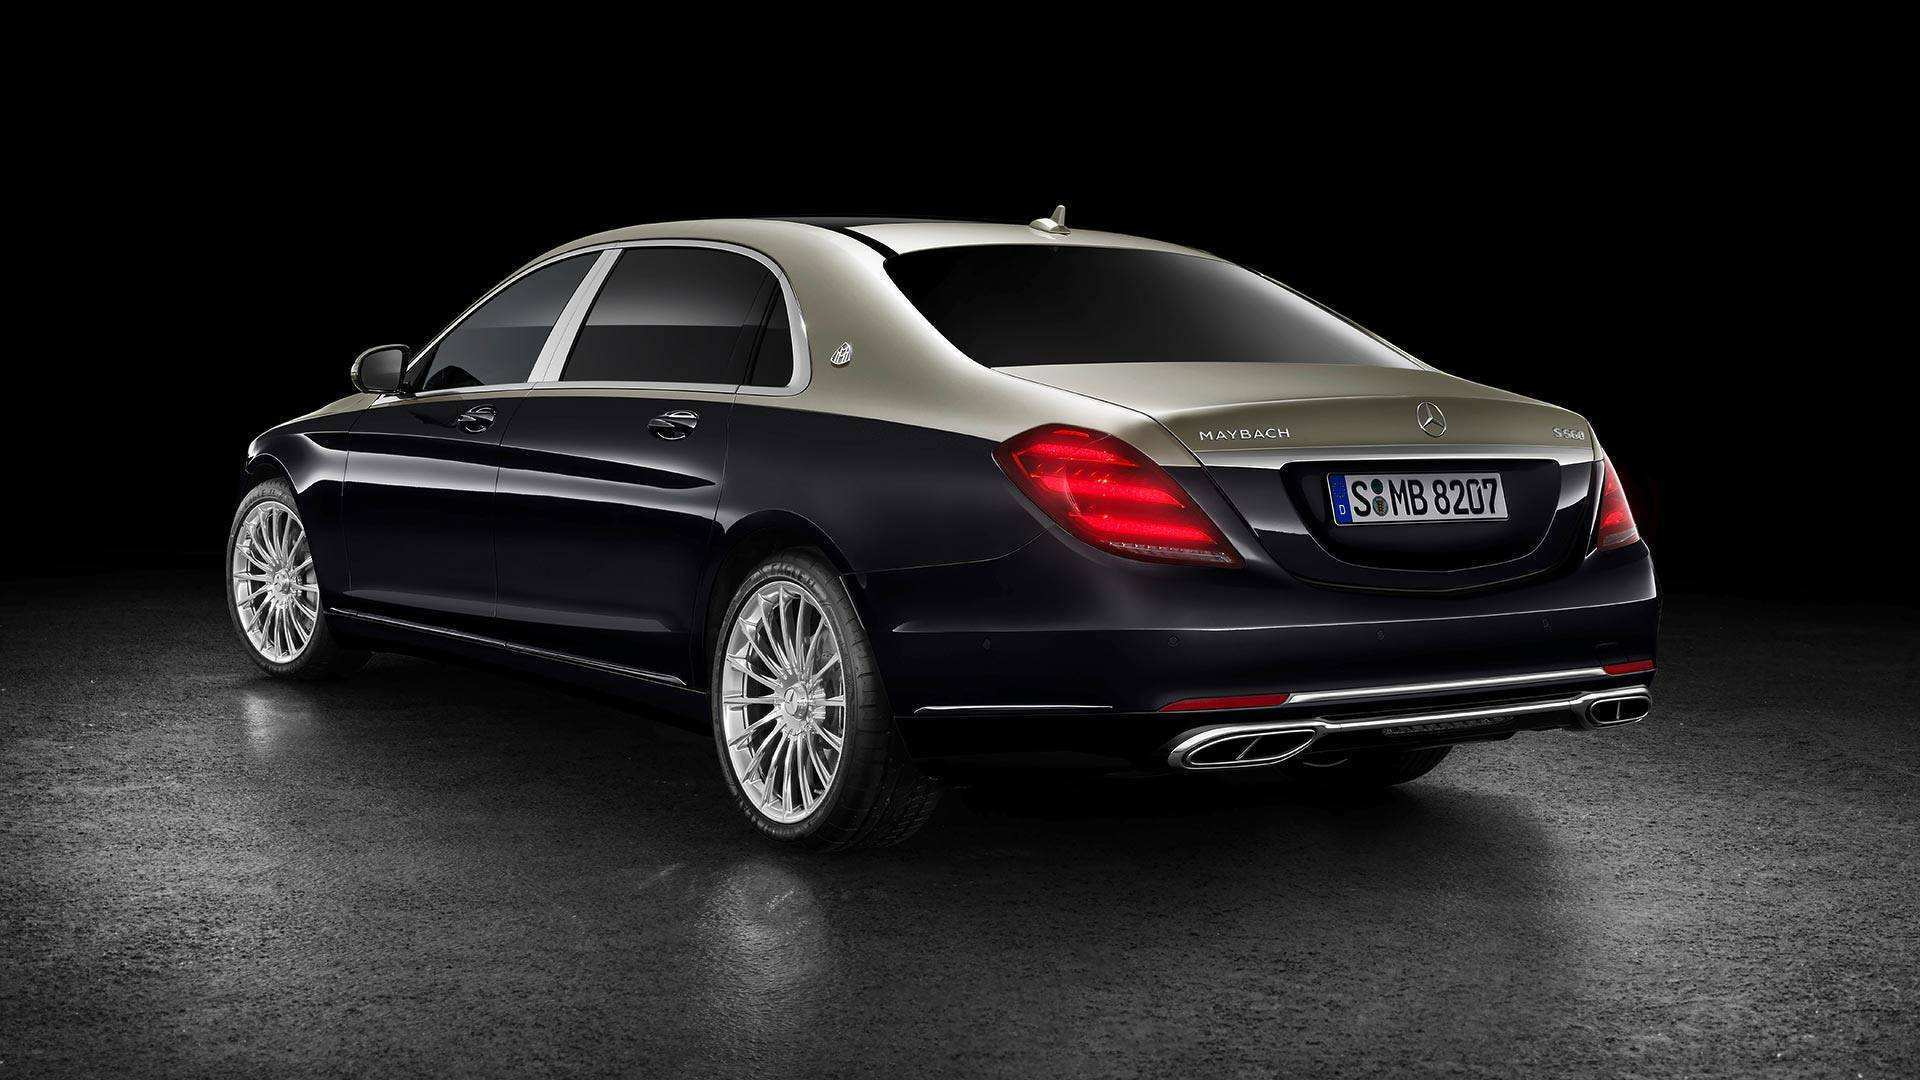 55 New Mercedes S650 Maybach 2019 Photos by Mercedes S650 Maybach 2019